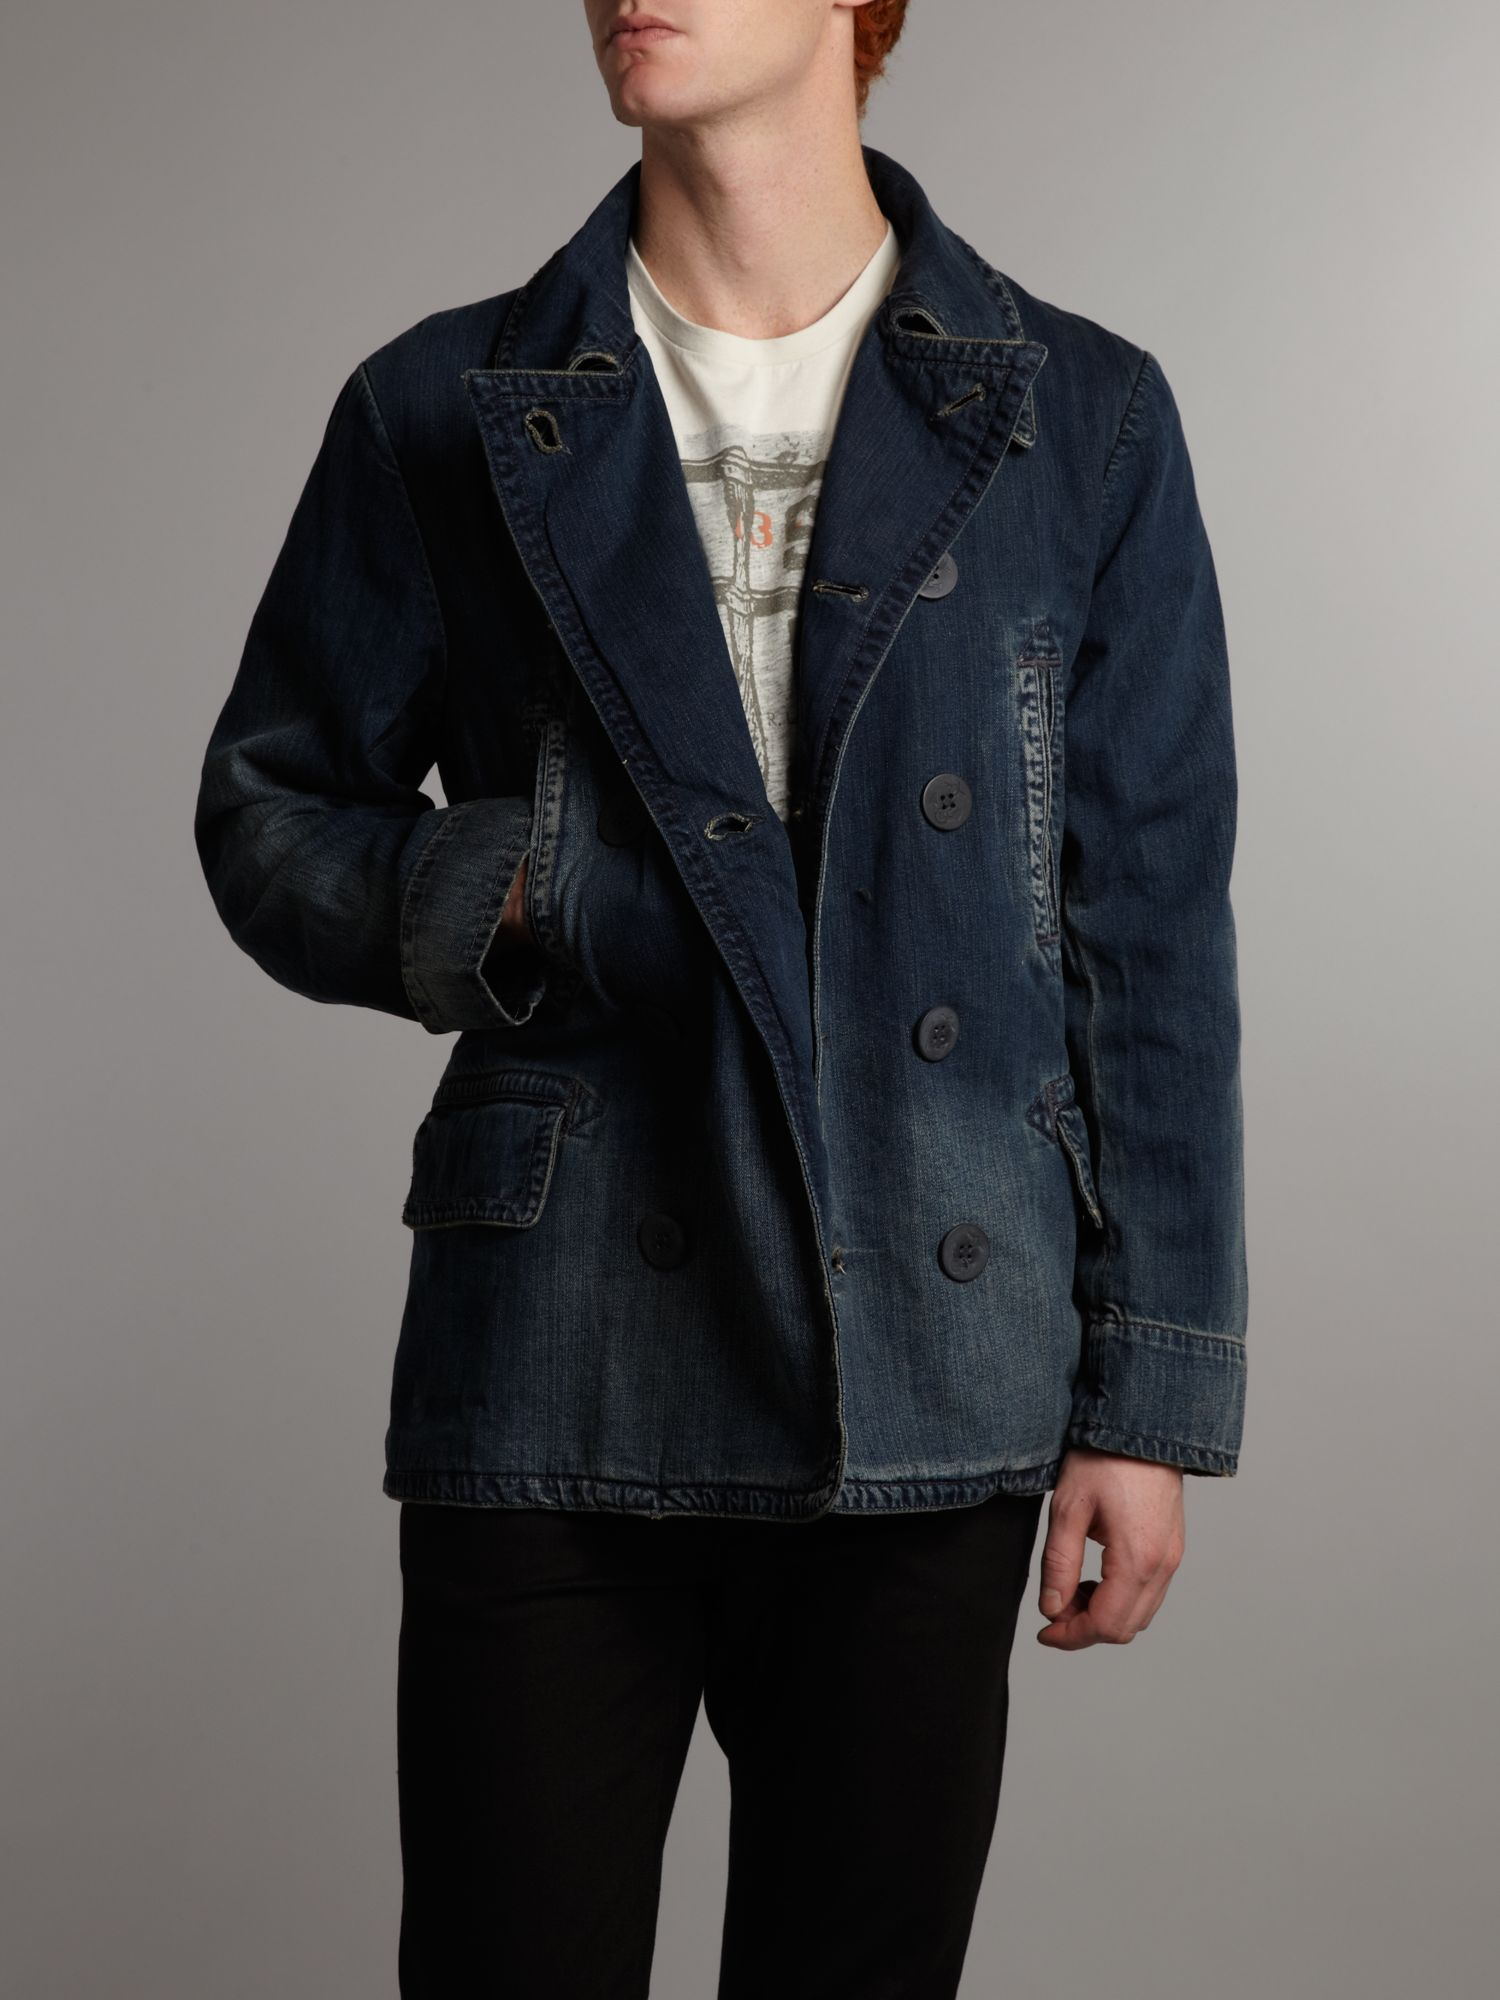 IL_ Mens Iridescent Denim Winter Peacoat double breasted Long Trench Coat Black Long Style $ IL_ Men's Navy Blue Denim Long Style Winter Peacoat double breasted Long Trench Coat $ SKU#JR Men's 44 Inch Winter Peacoat Long Wool Blend Double breasted Peacoat Full Length Top Coat Black $